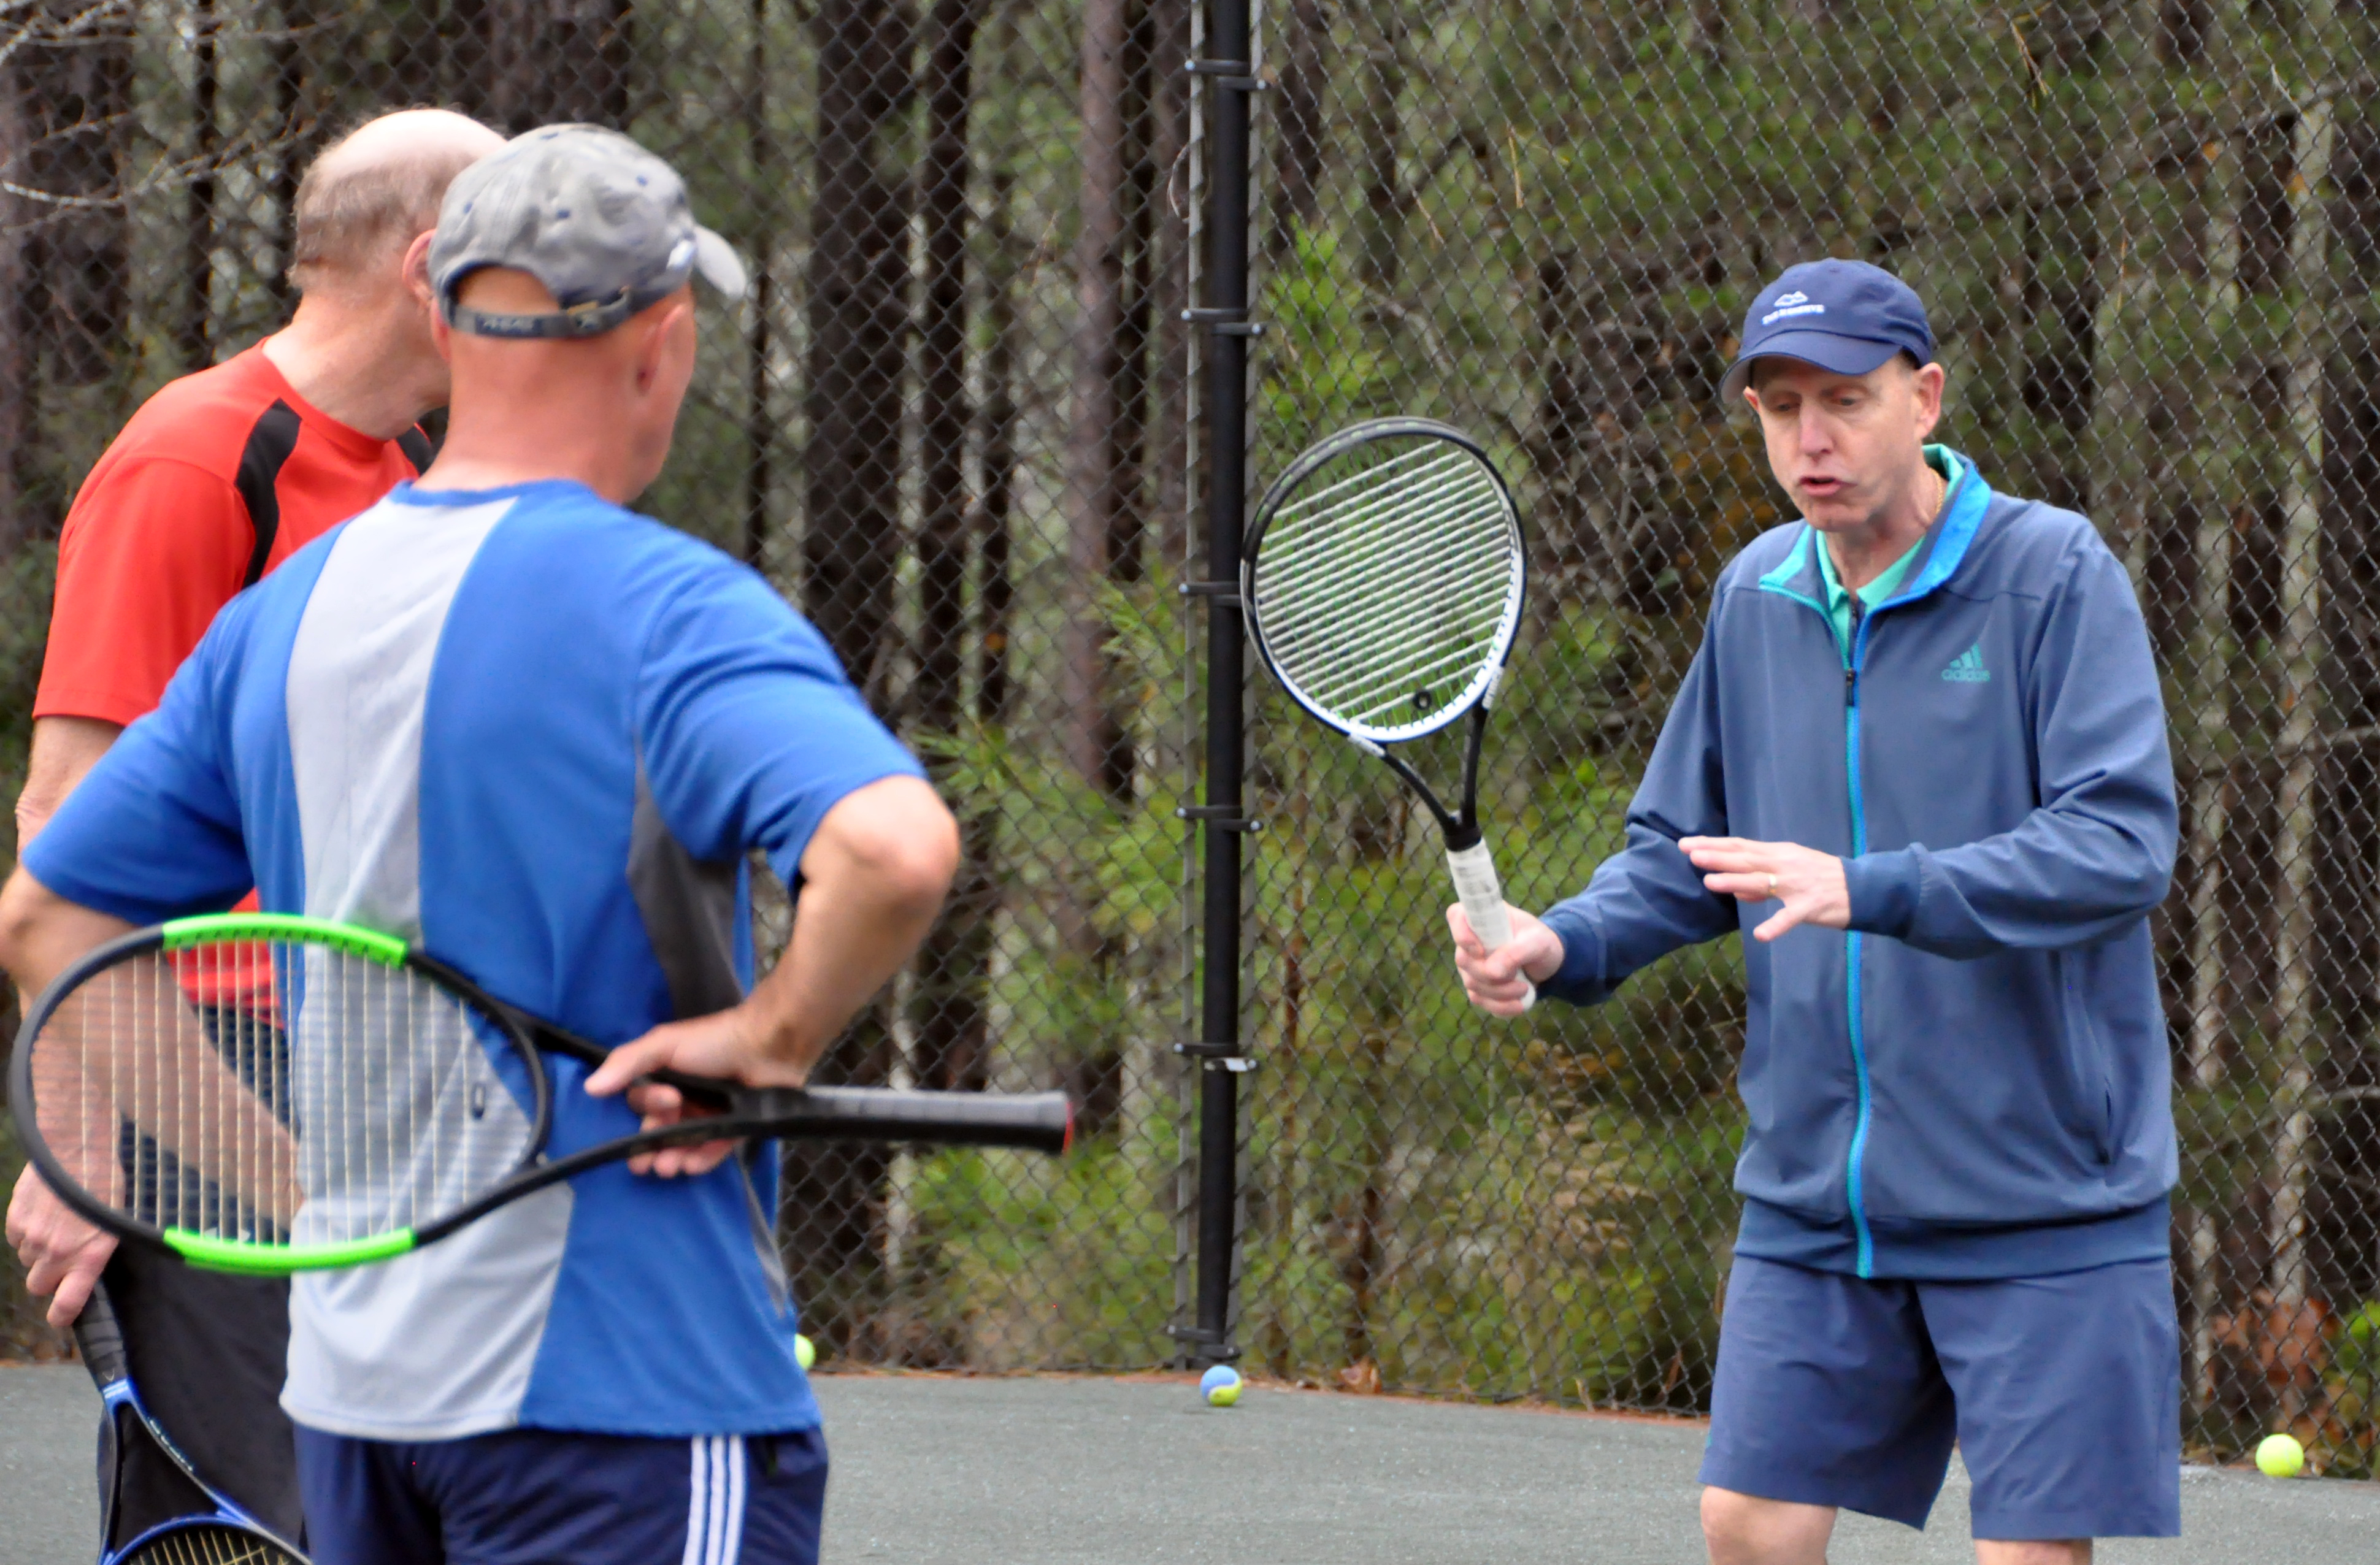 Welcome Mike Lissner, our New Director of Tennis at The Reserve at Lake Keowee